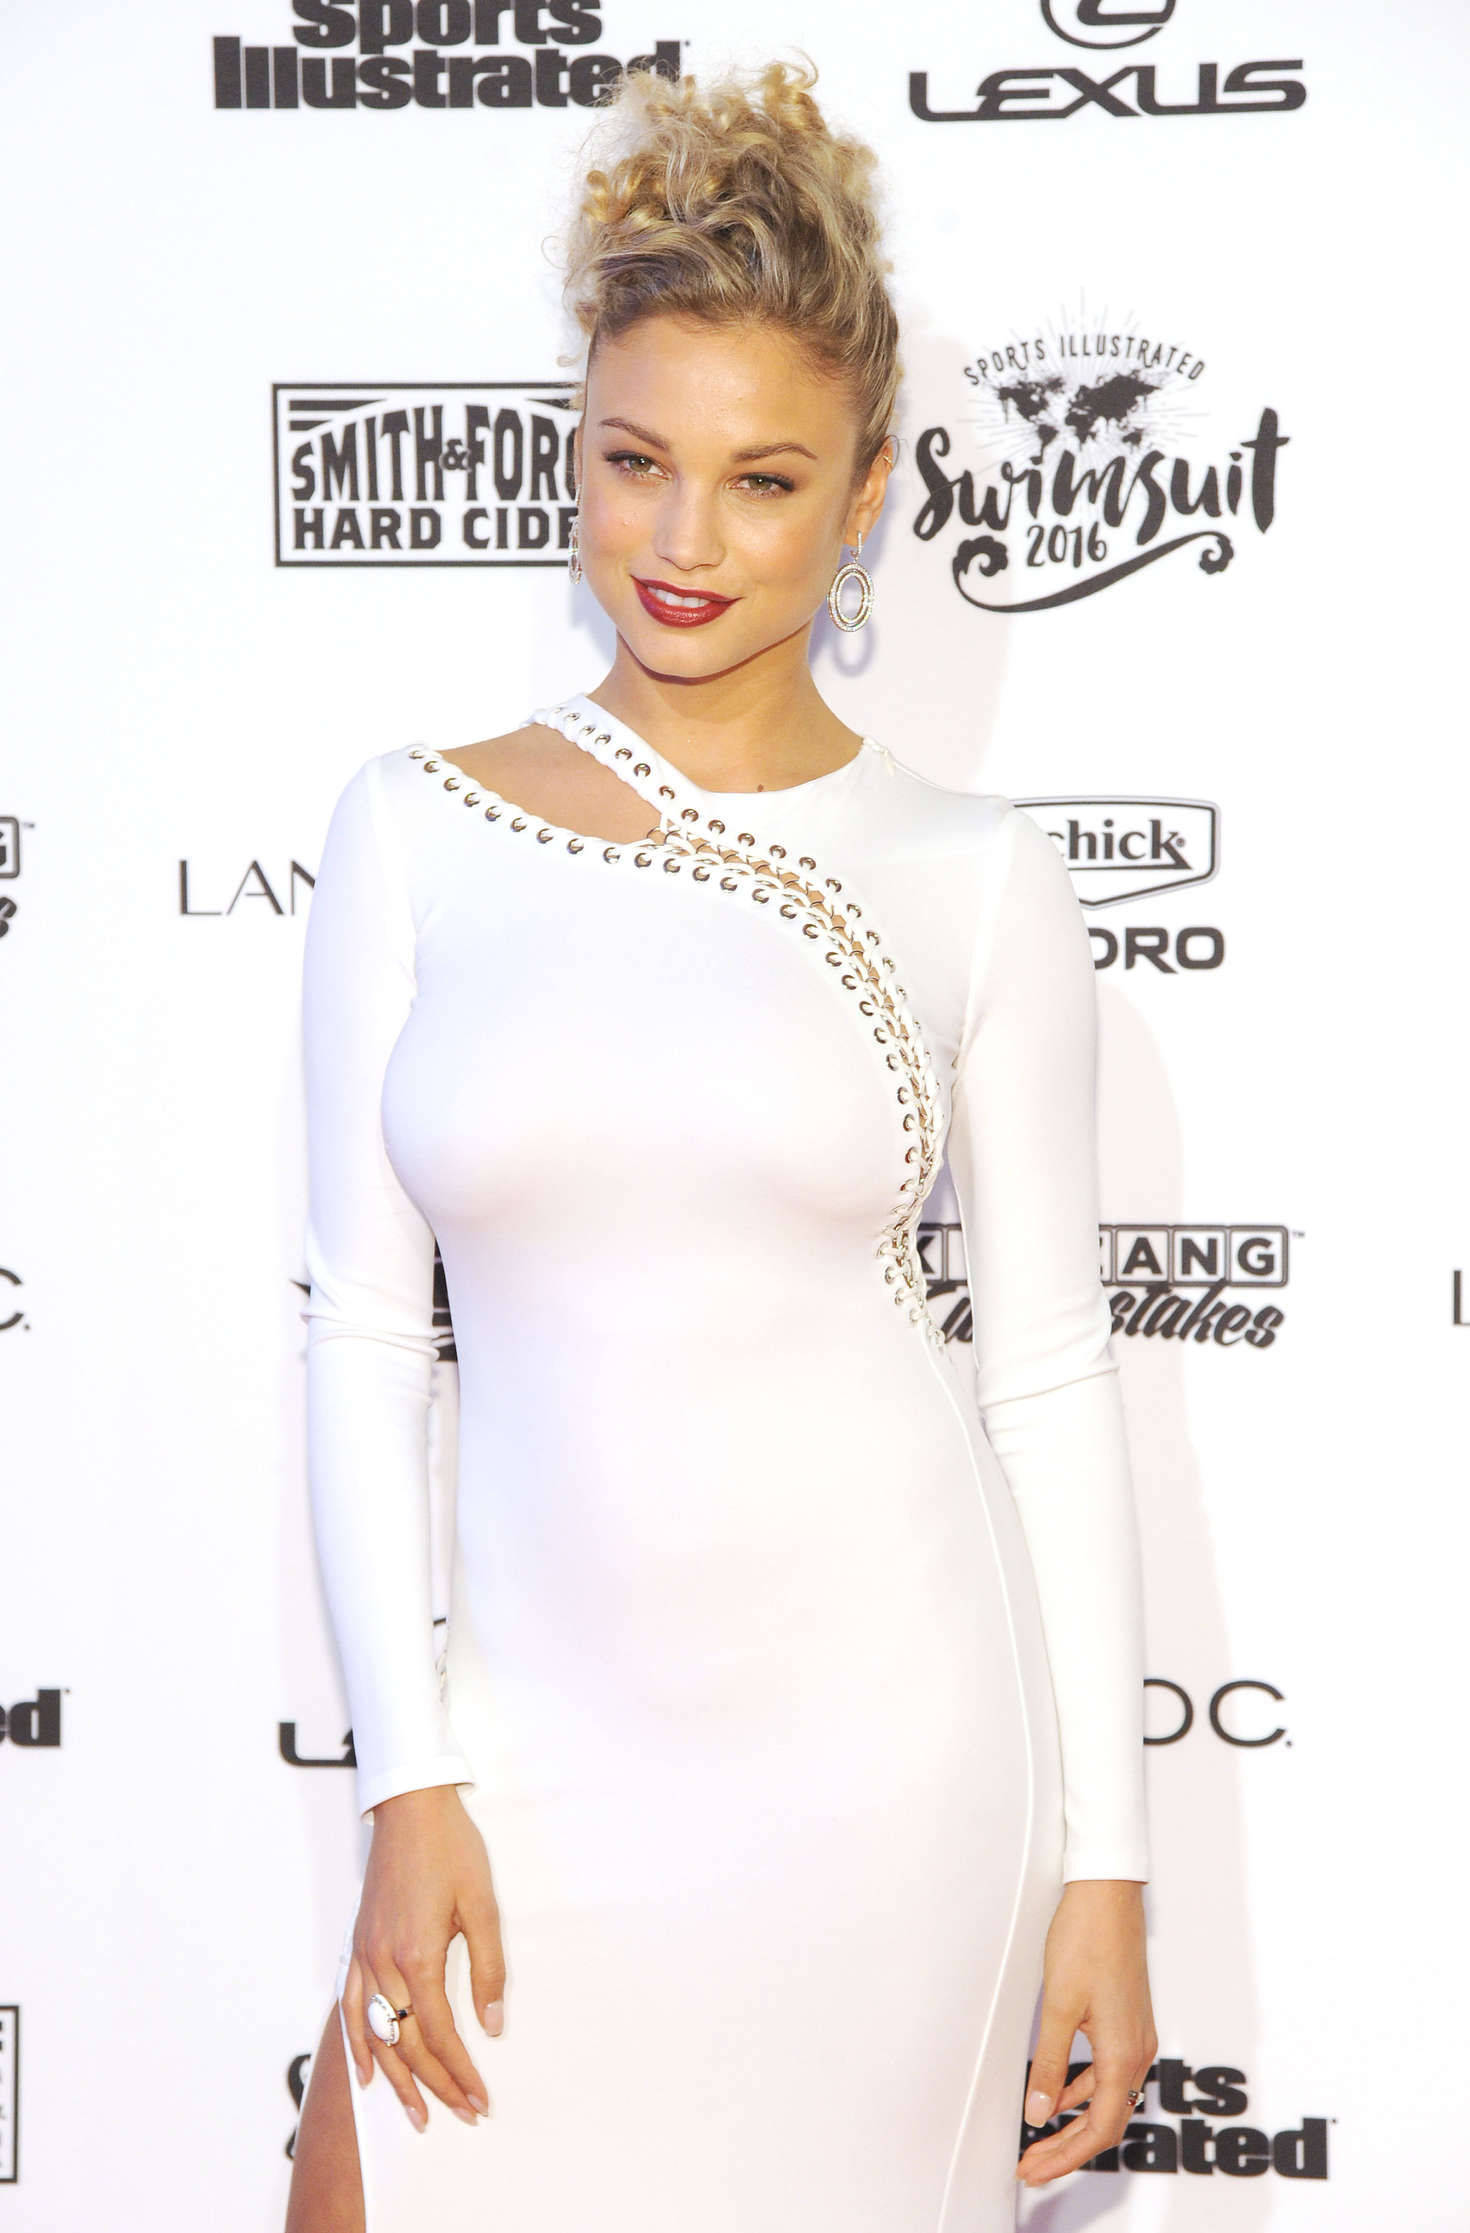 Rose Bertram - Sports Illustrated Celebrates Swimsuit 2016 VIP Red Carpet Event in NY